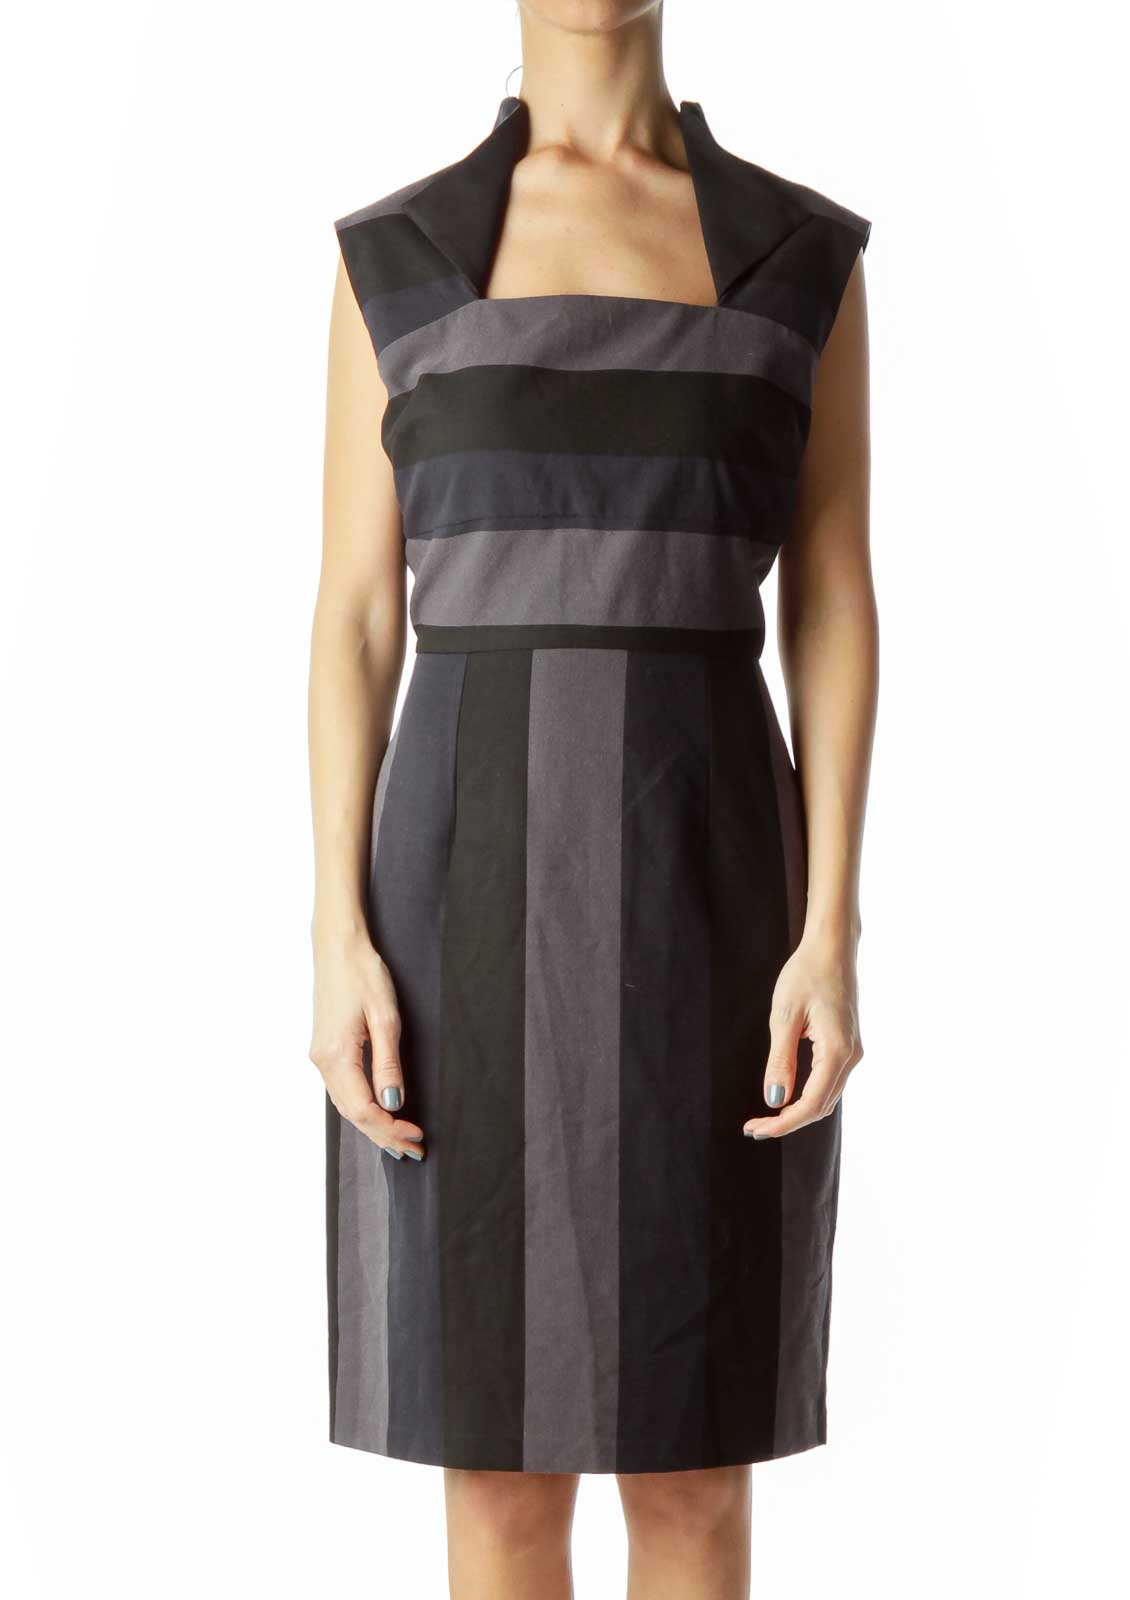 Black Navy Gray Striped Sheath Dress with Collar Front